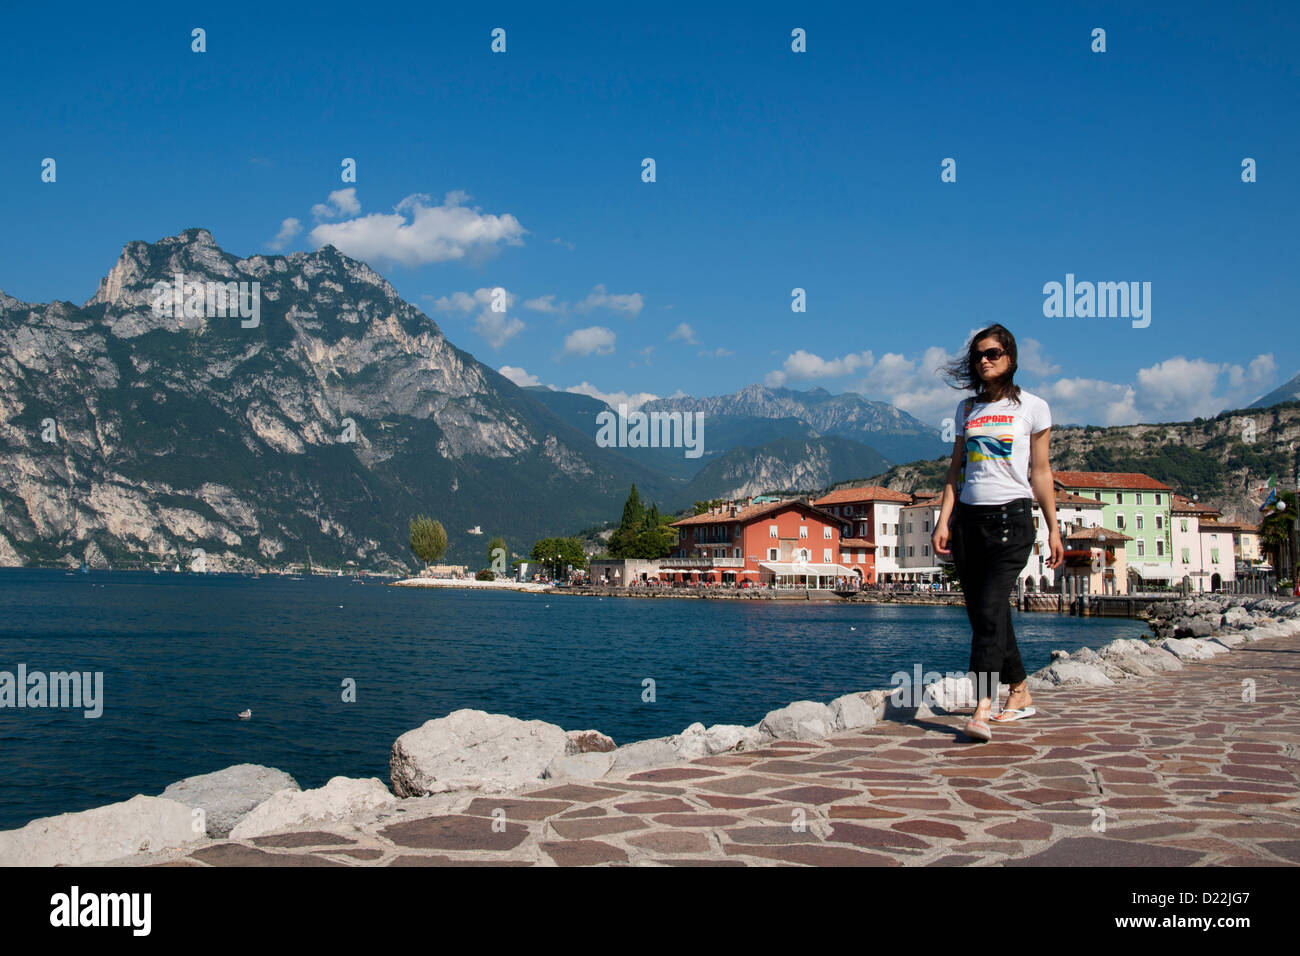 Woman, Girl, walking, Lake, Gardasee, Lago di Garda, Torbole, Lake Garda, Trient, Italy, Europe Stock Photo